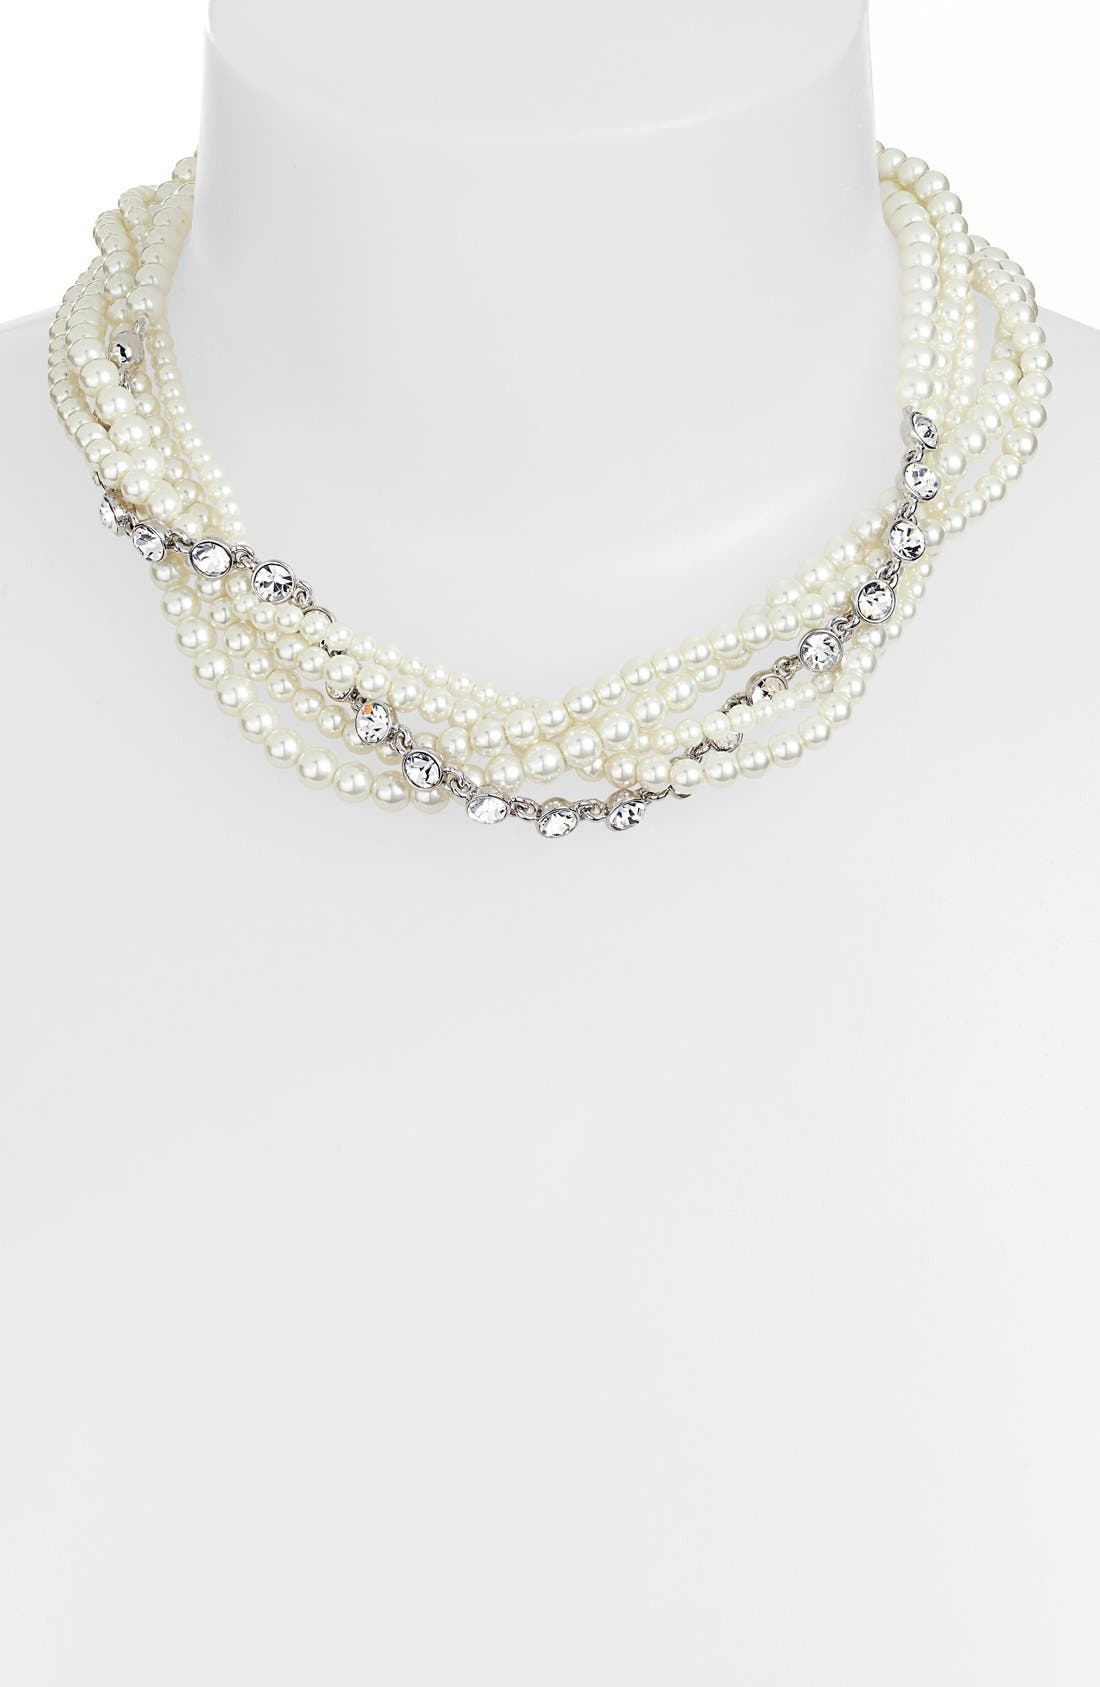 GIVENCHY Faux Pearl & Crystal Torsade Necklace, Main, color, 100